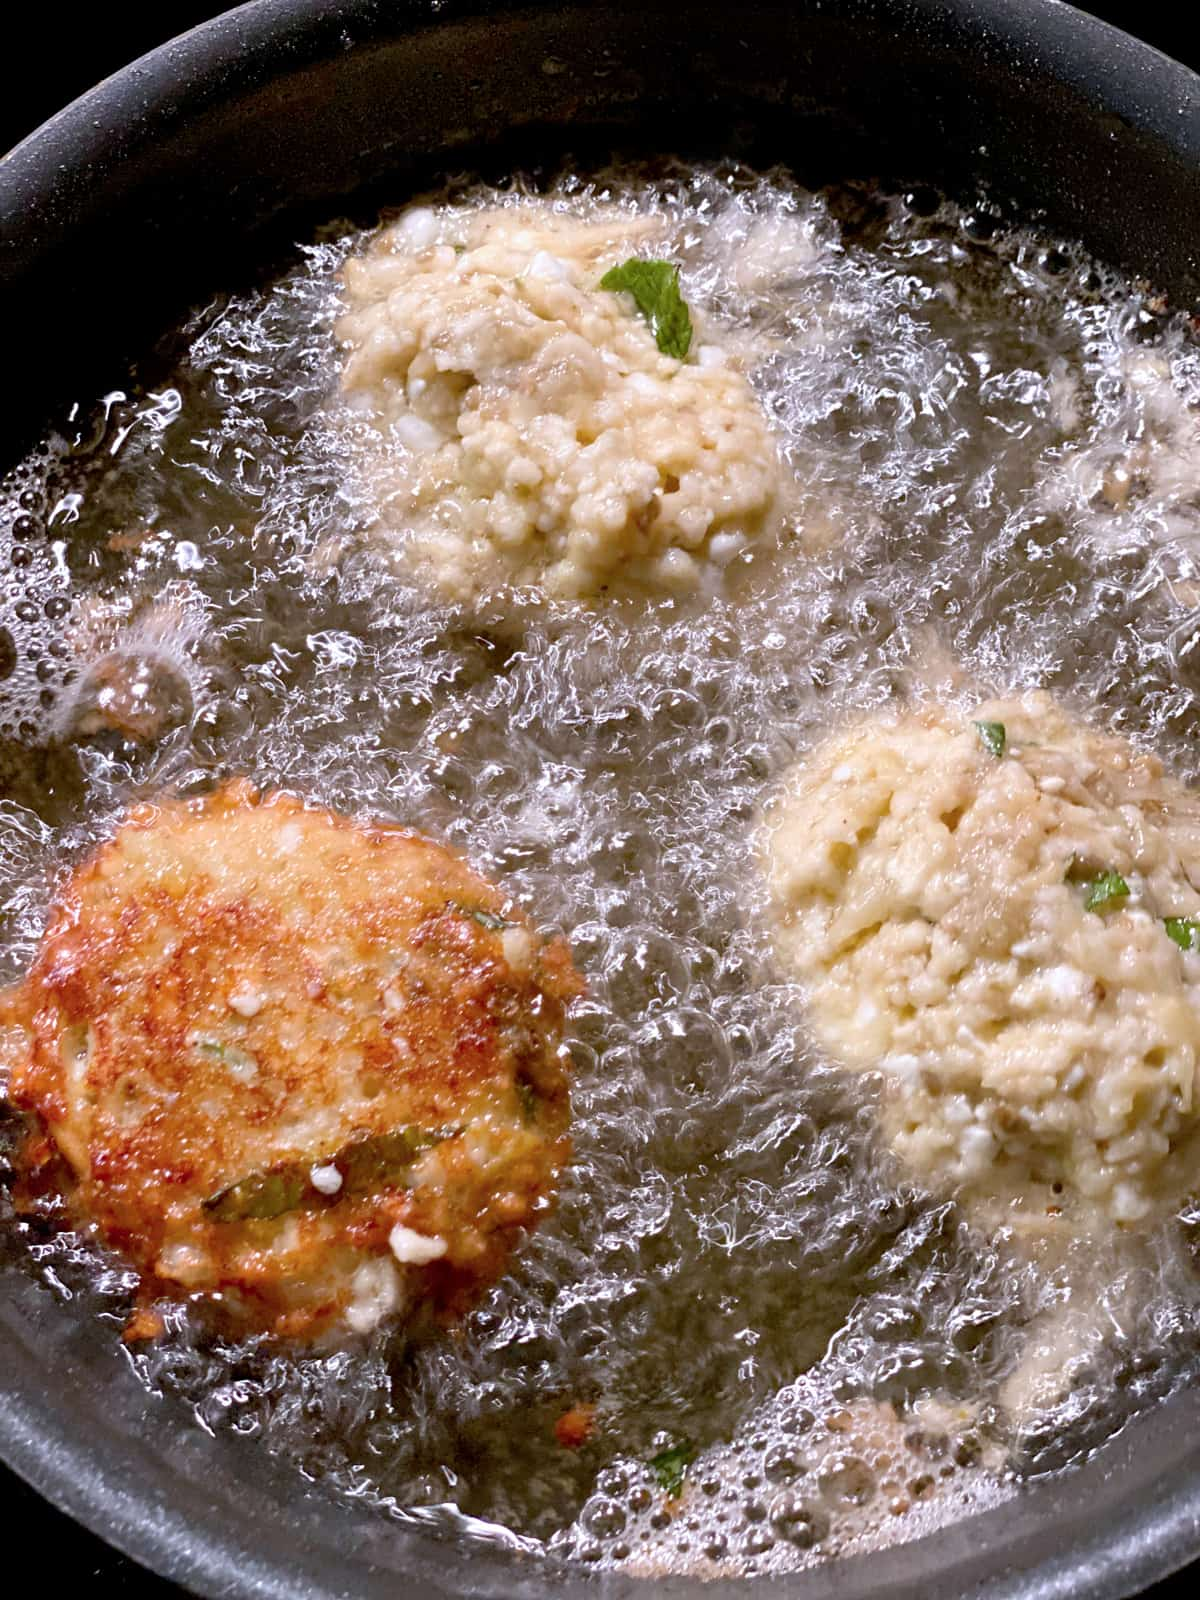 Three eggplant fritters frying in olive oil.